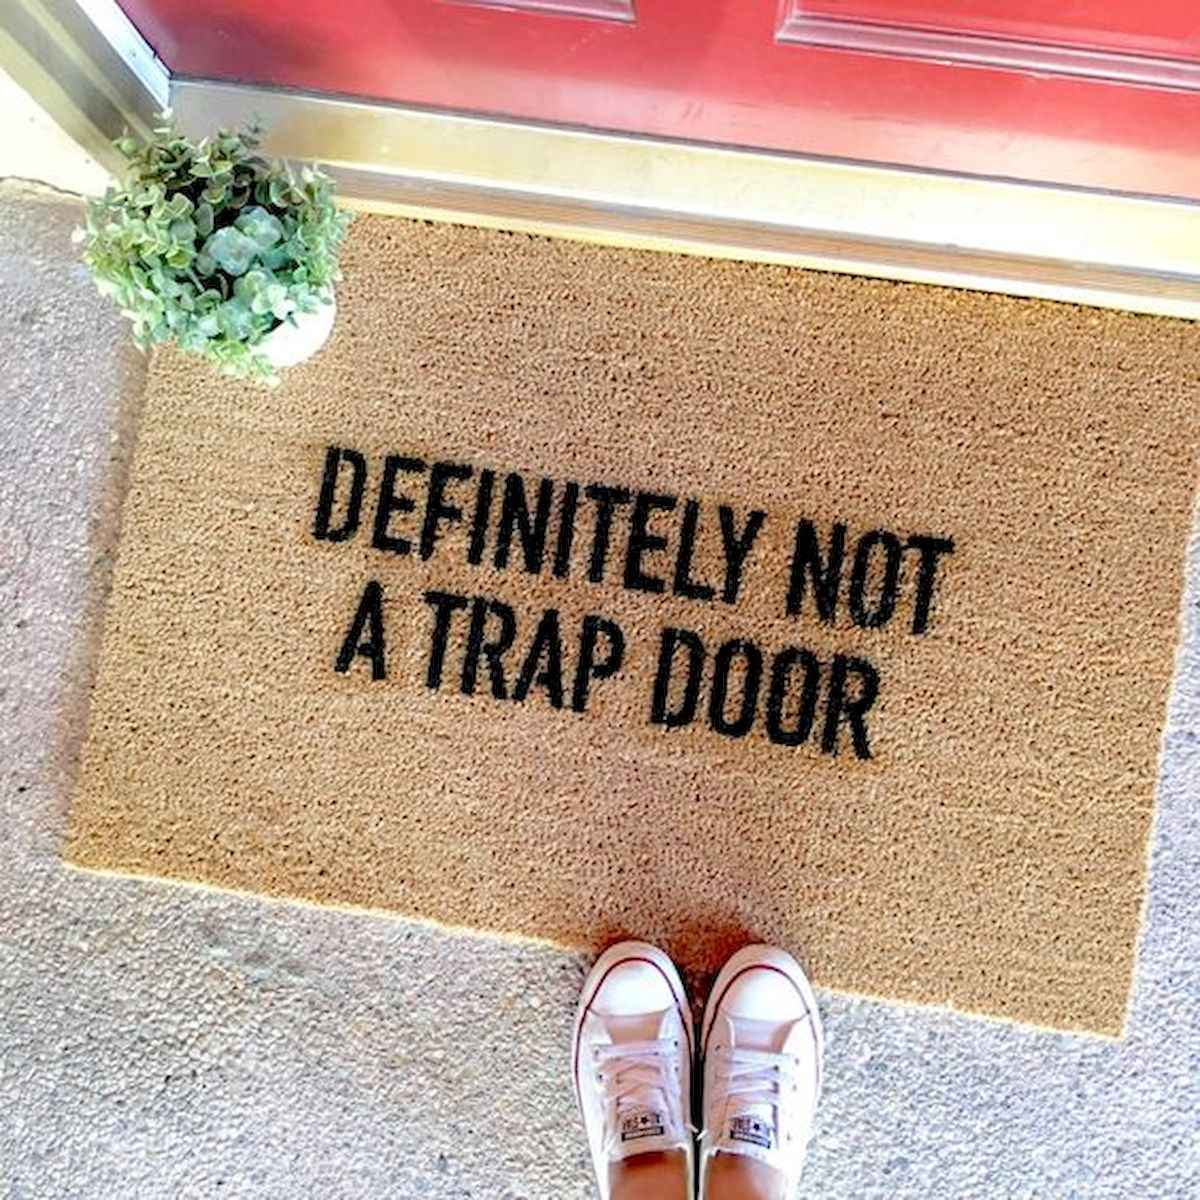 20 funny rug door mats design ideas (7)